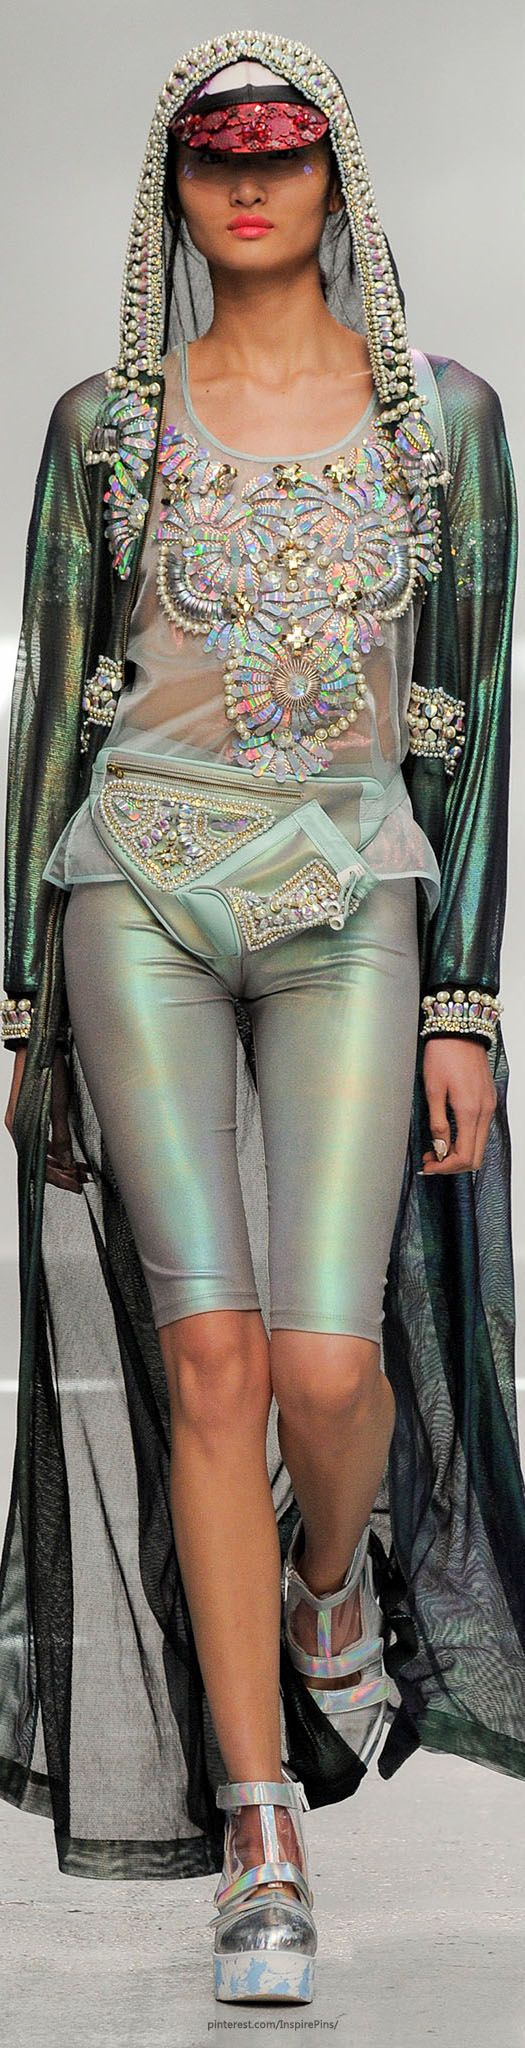 Spring 2015 Manish Arora | The House of Beccaria